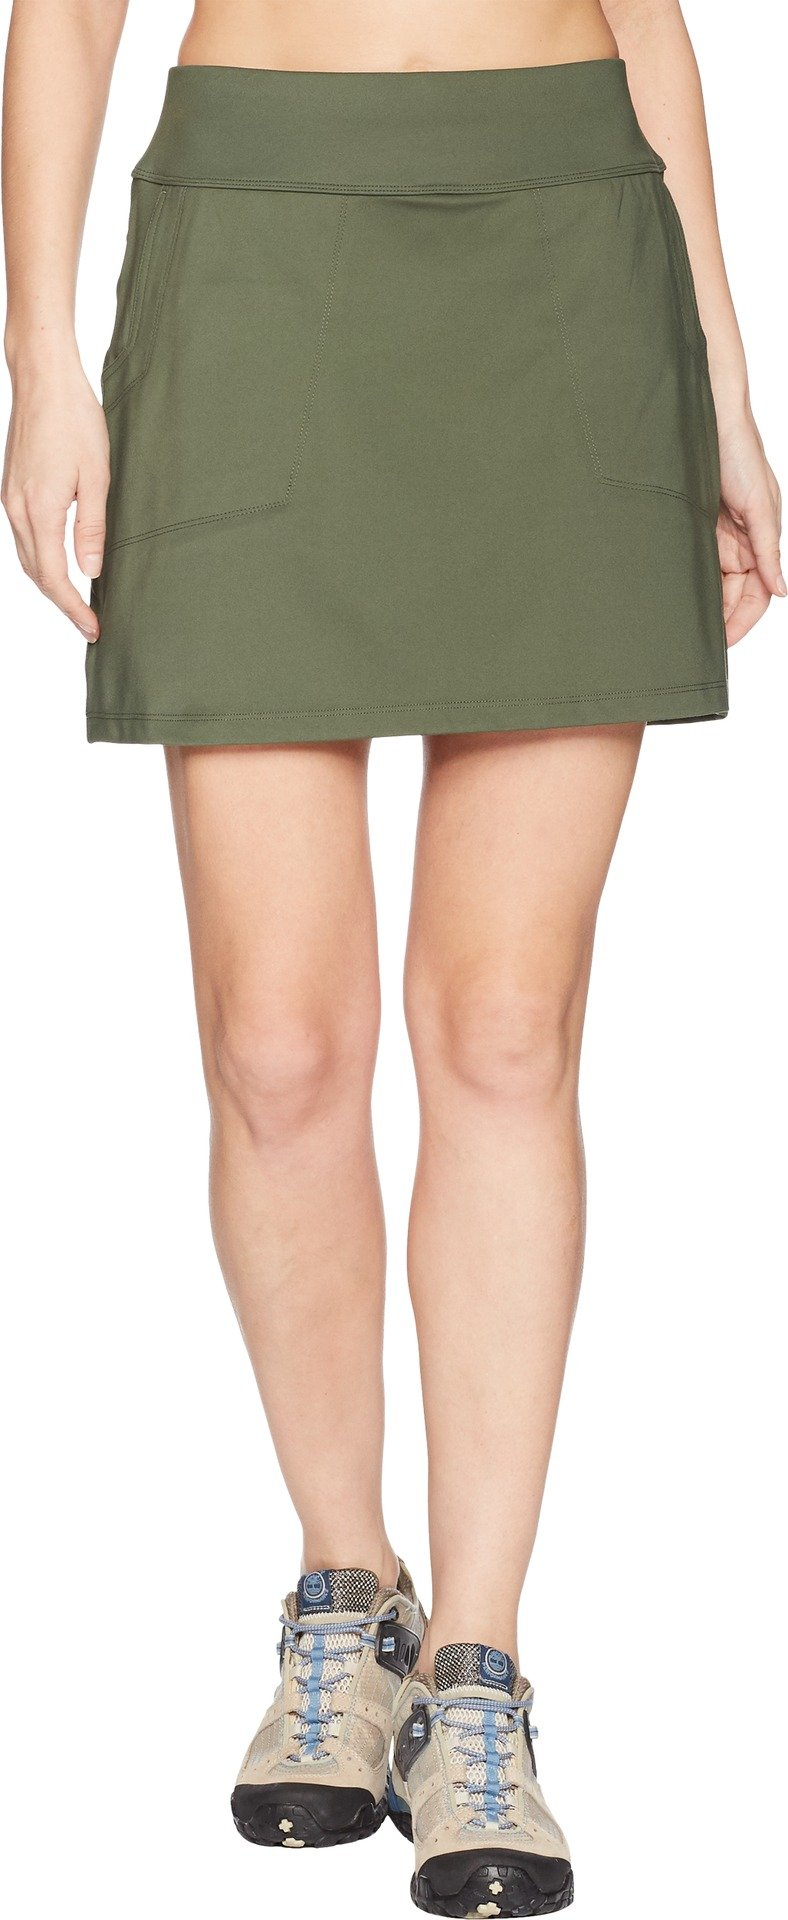 Royal Robbins Women's Jammer Knit Skort, Bayleaf, Small by Royal Robbins